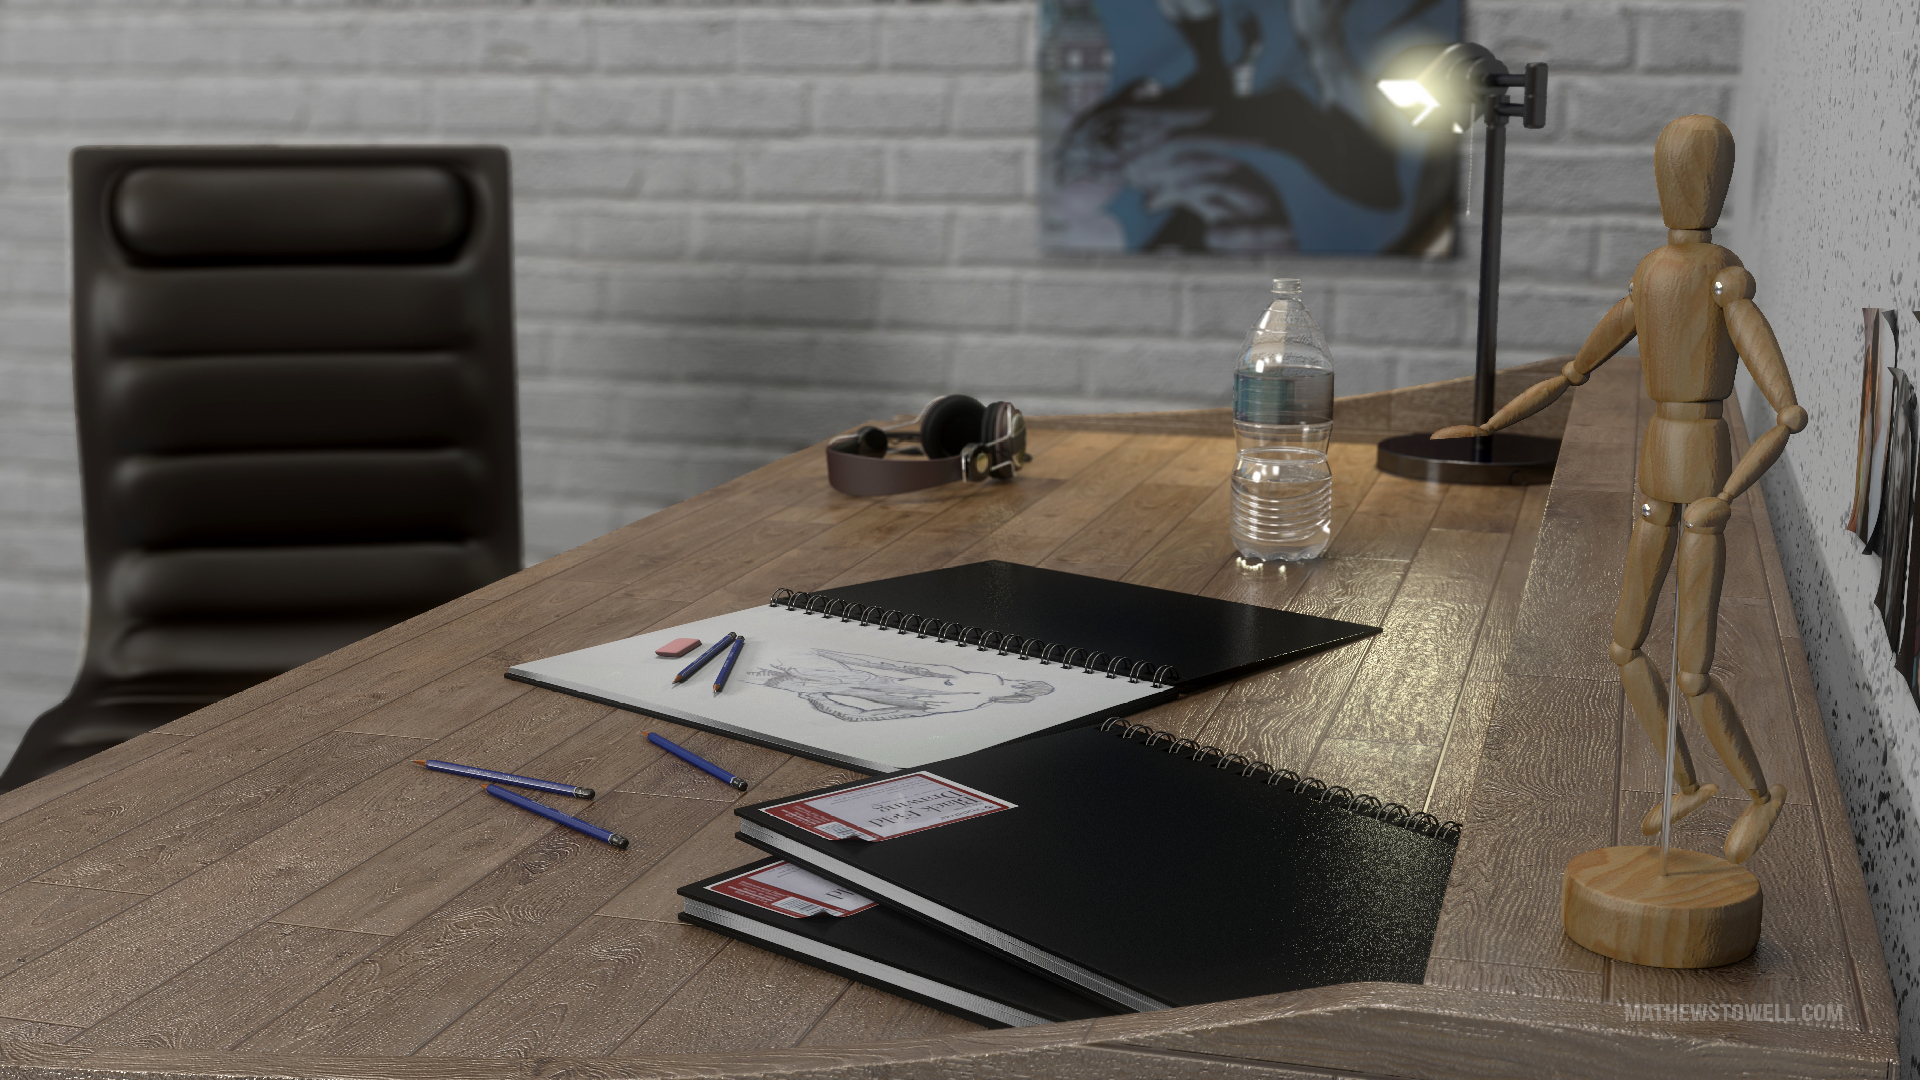 vray-depth-of-field-desk-scene-